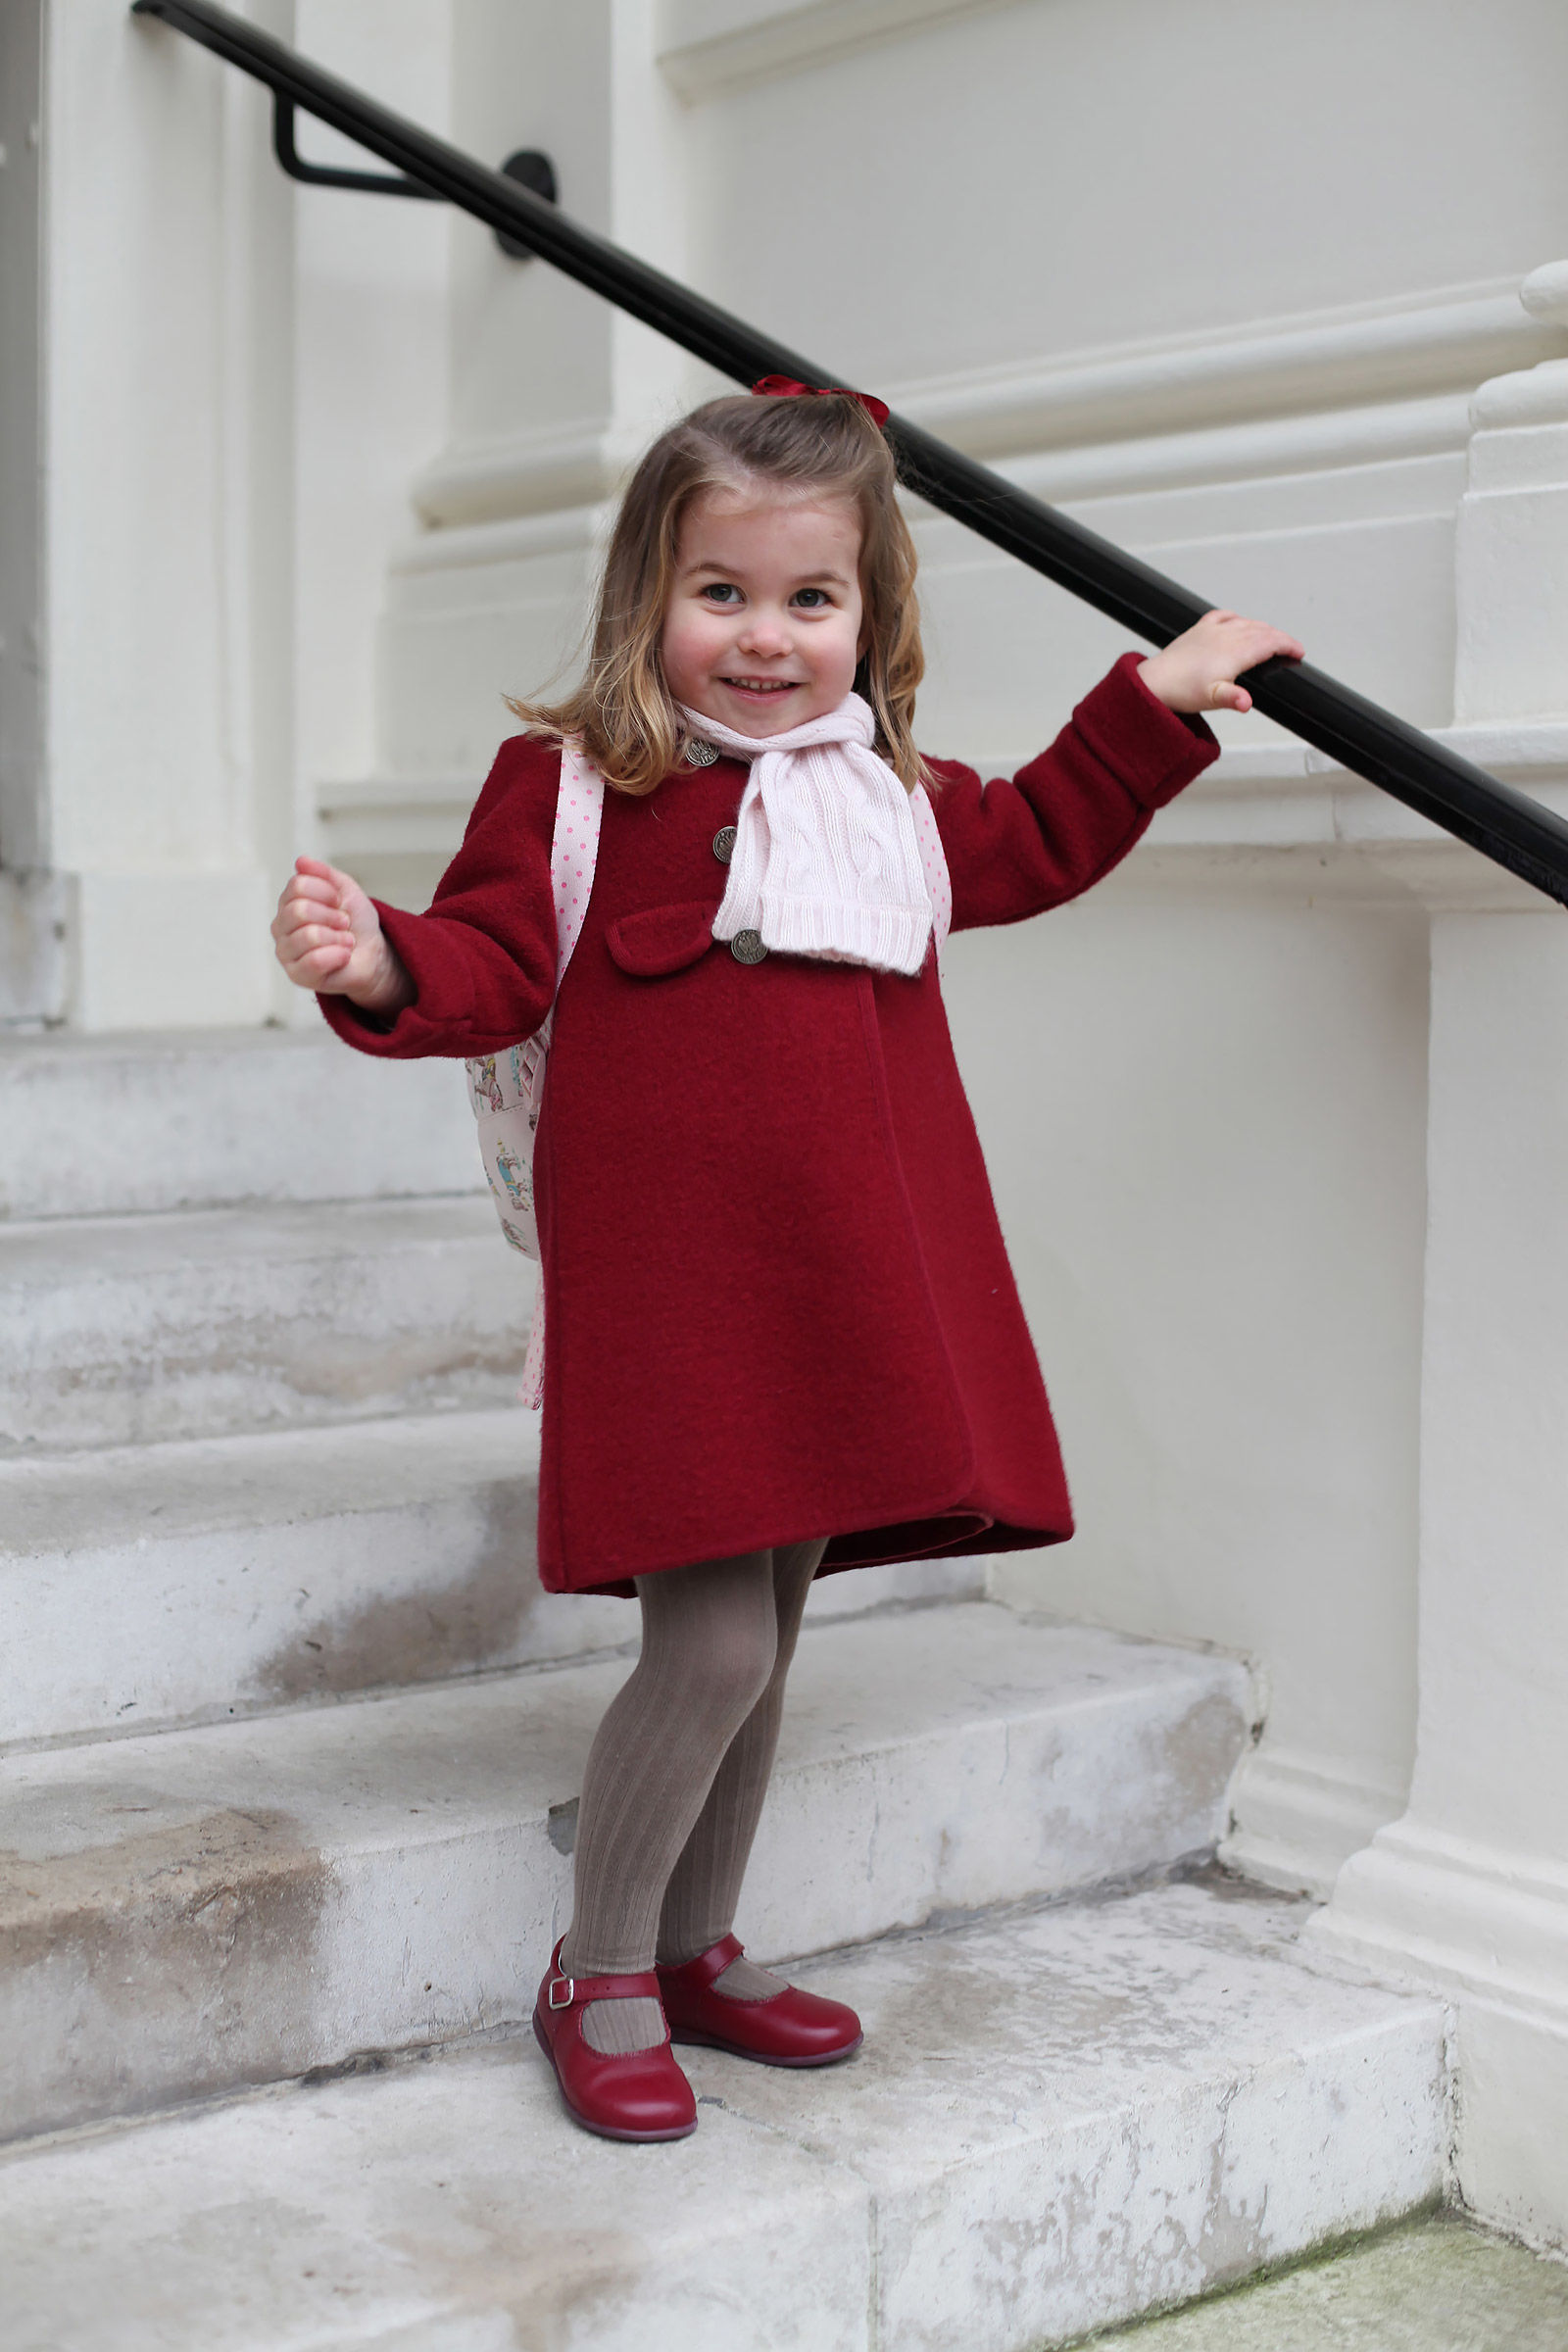 Now We Know Princess Charlotte's Favorite Pastime Thanks to Dad Prince William!